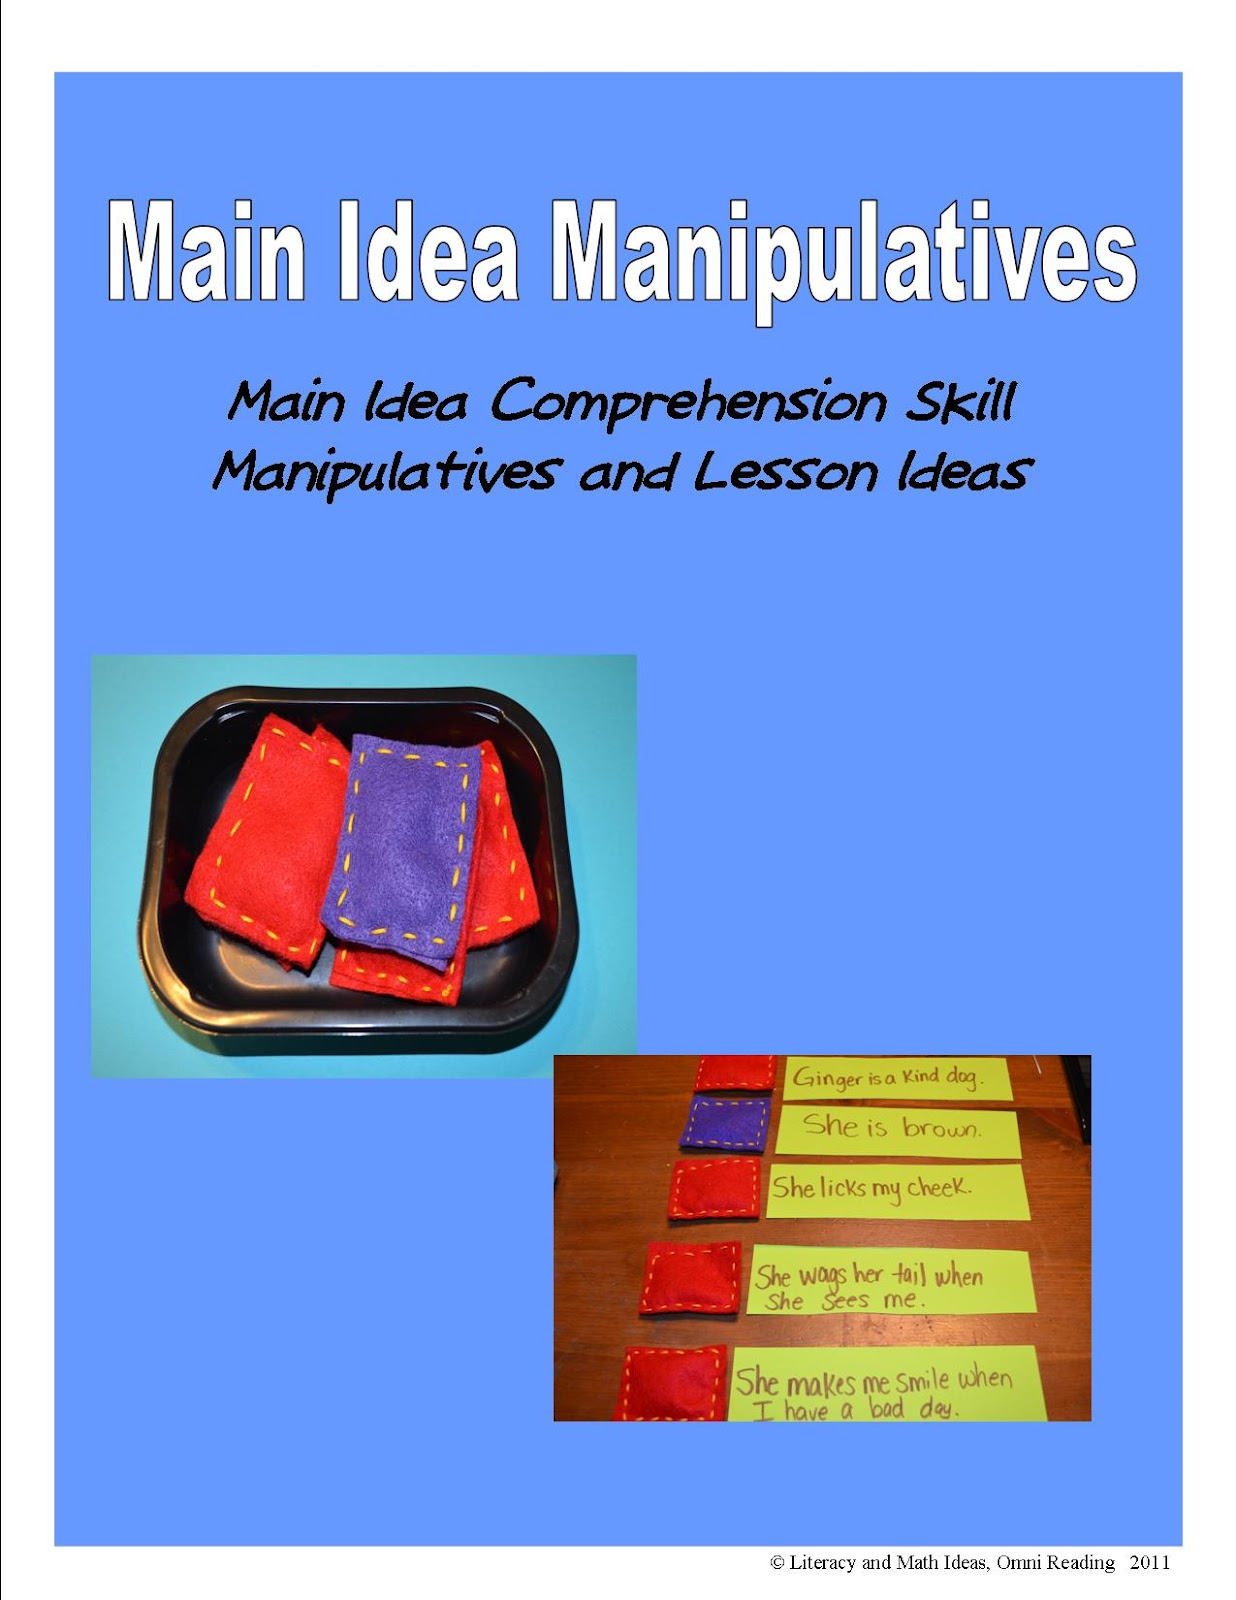 5th grade math lessons with manipulatives | 3rdrailphotography.com